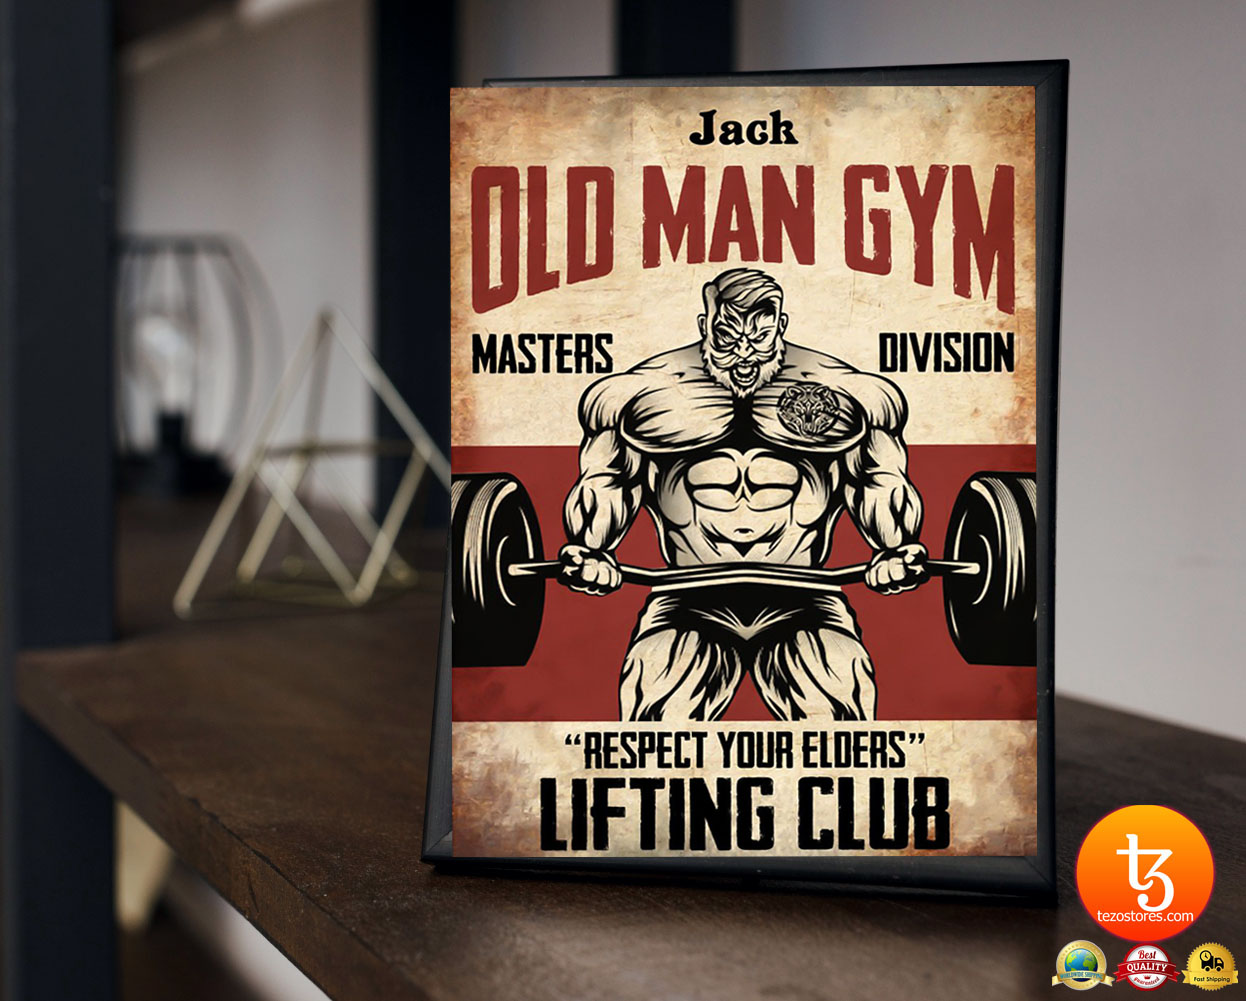 Old man gym masters division respect your elders lifting club poster 19